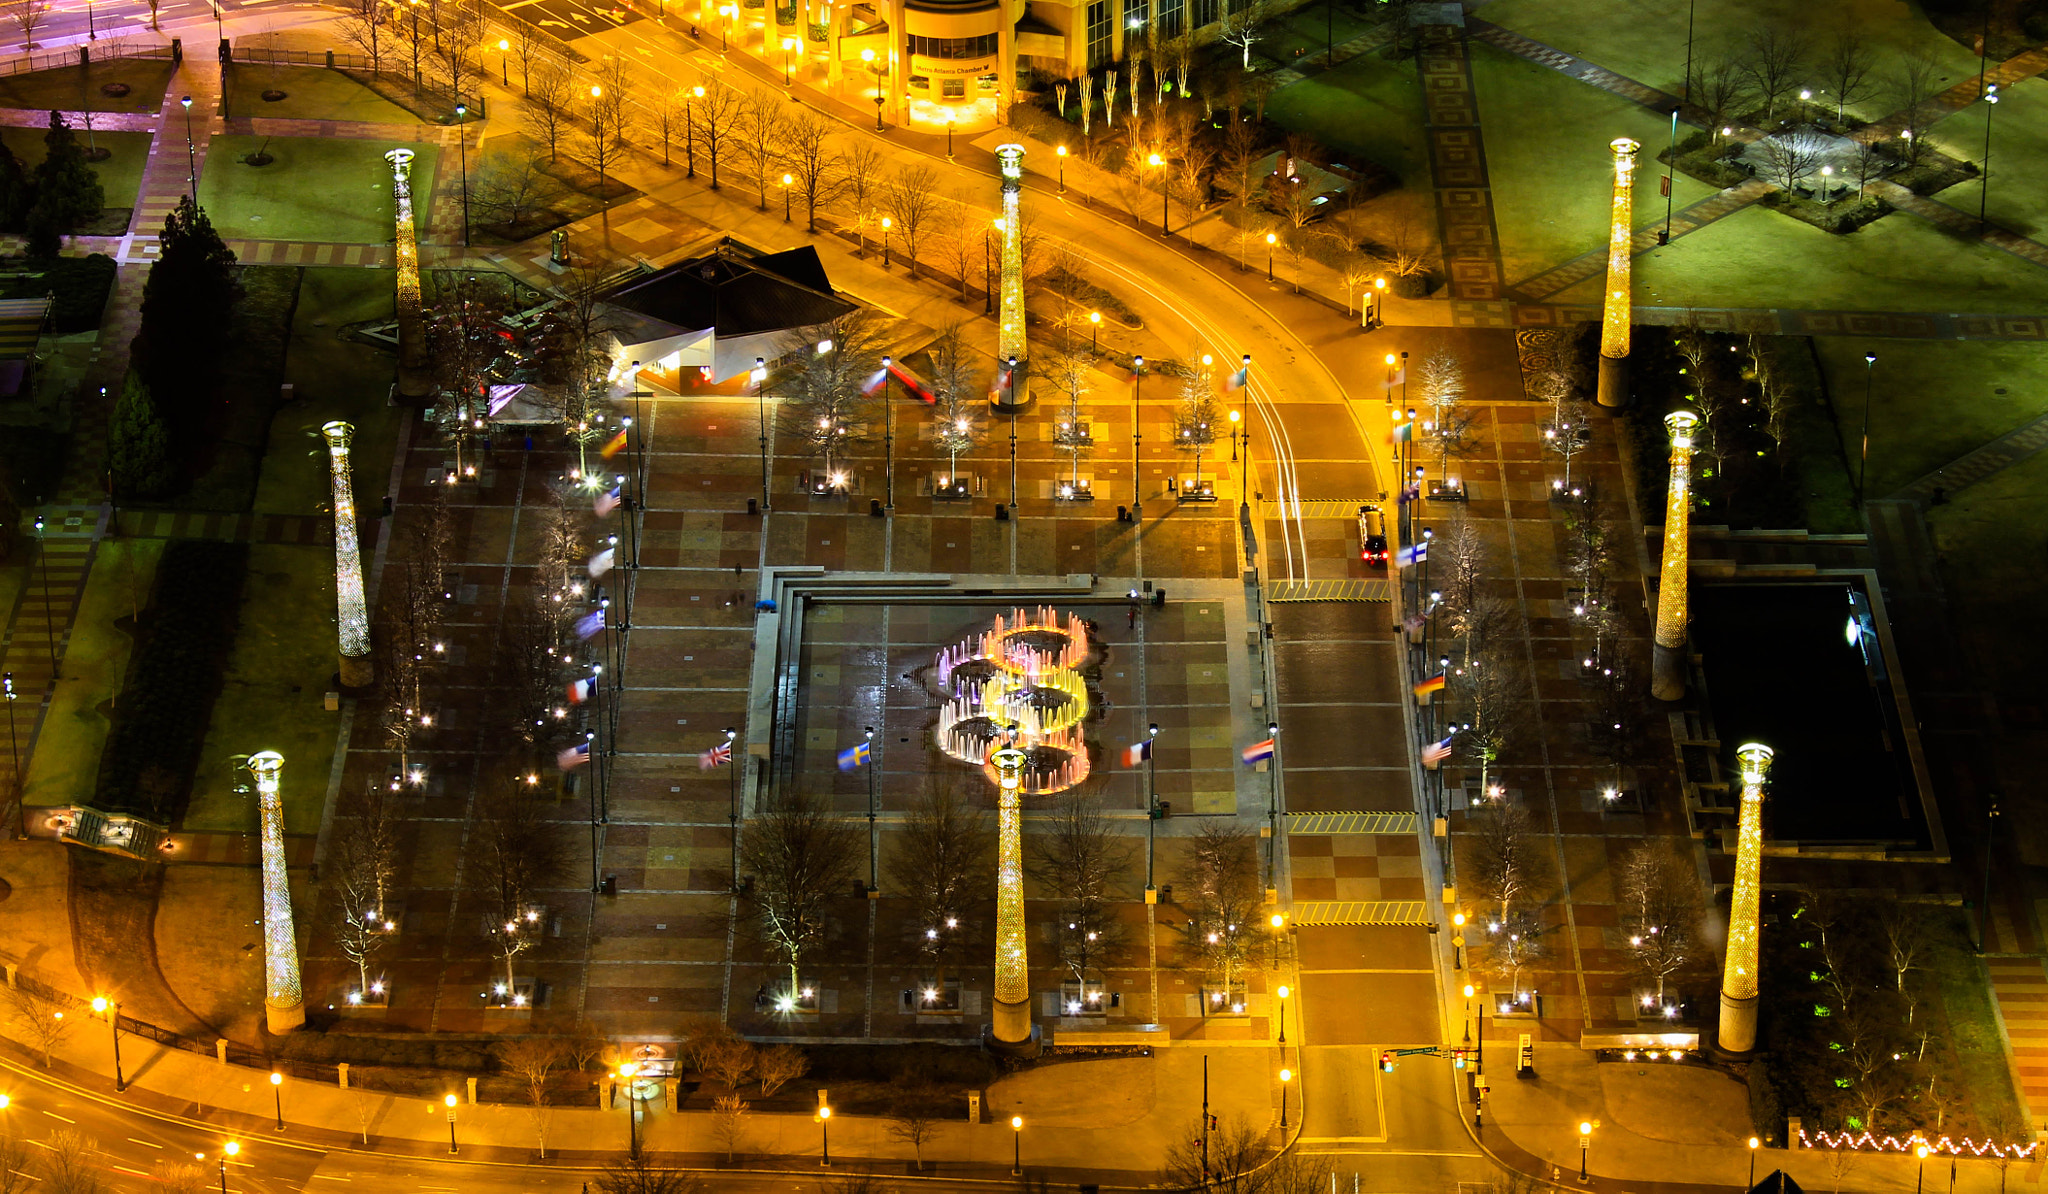 Photograph Centennial Olympic Park from above by Rajesh Gunasekaran on 500px